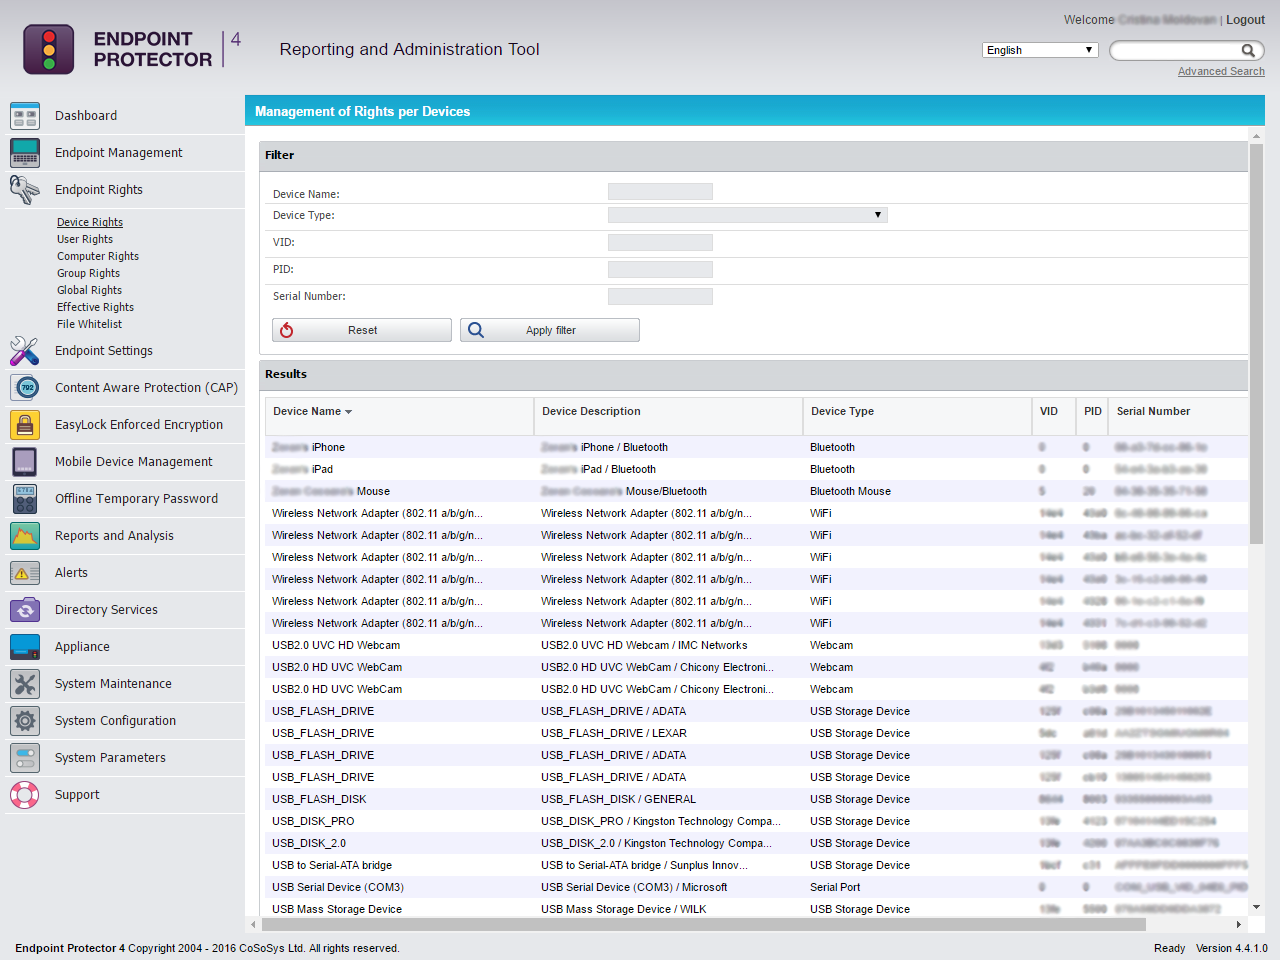 Endpoint Protector 4 - Device Rights